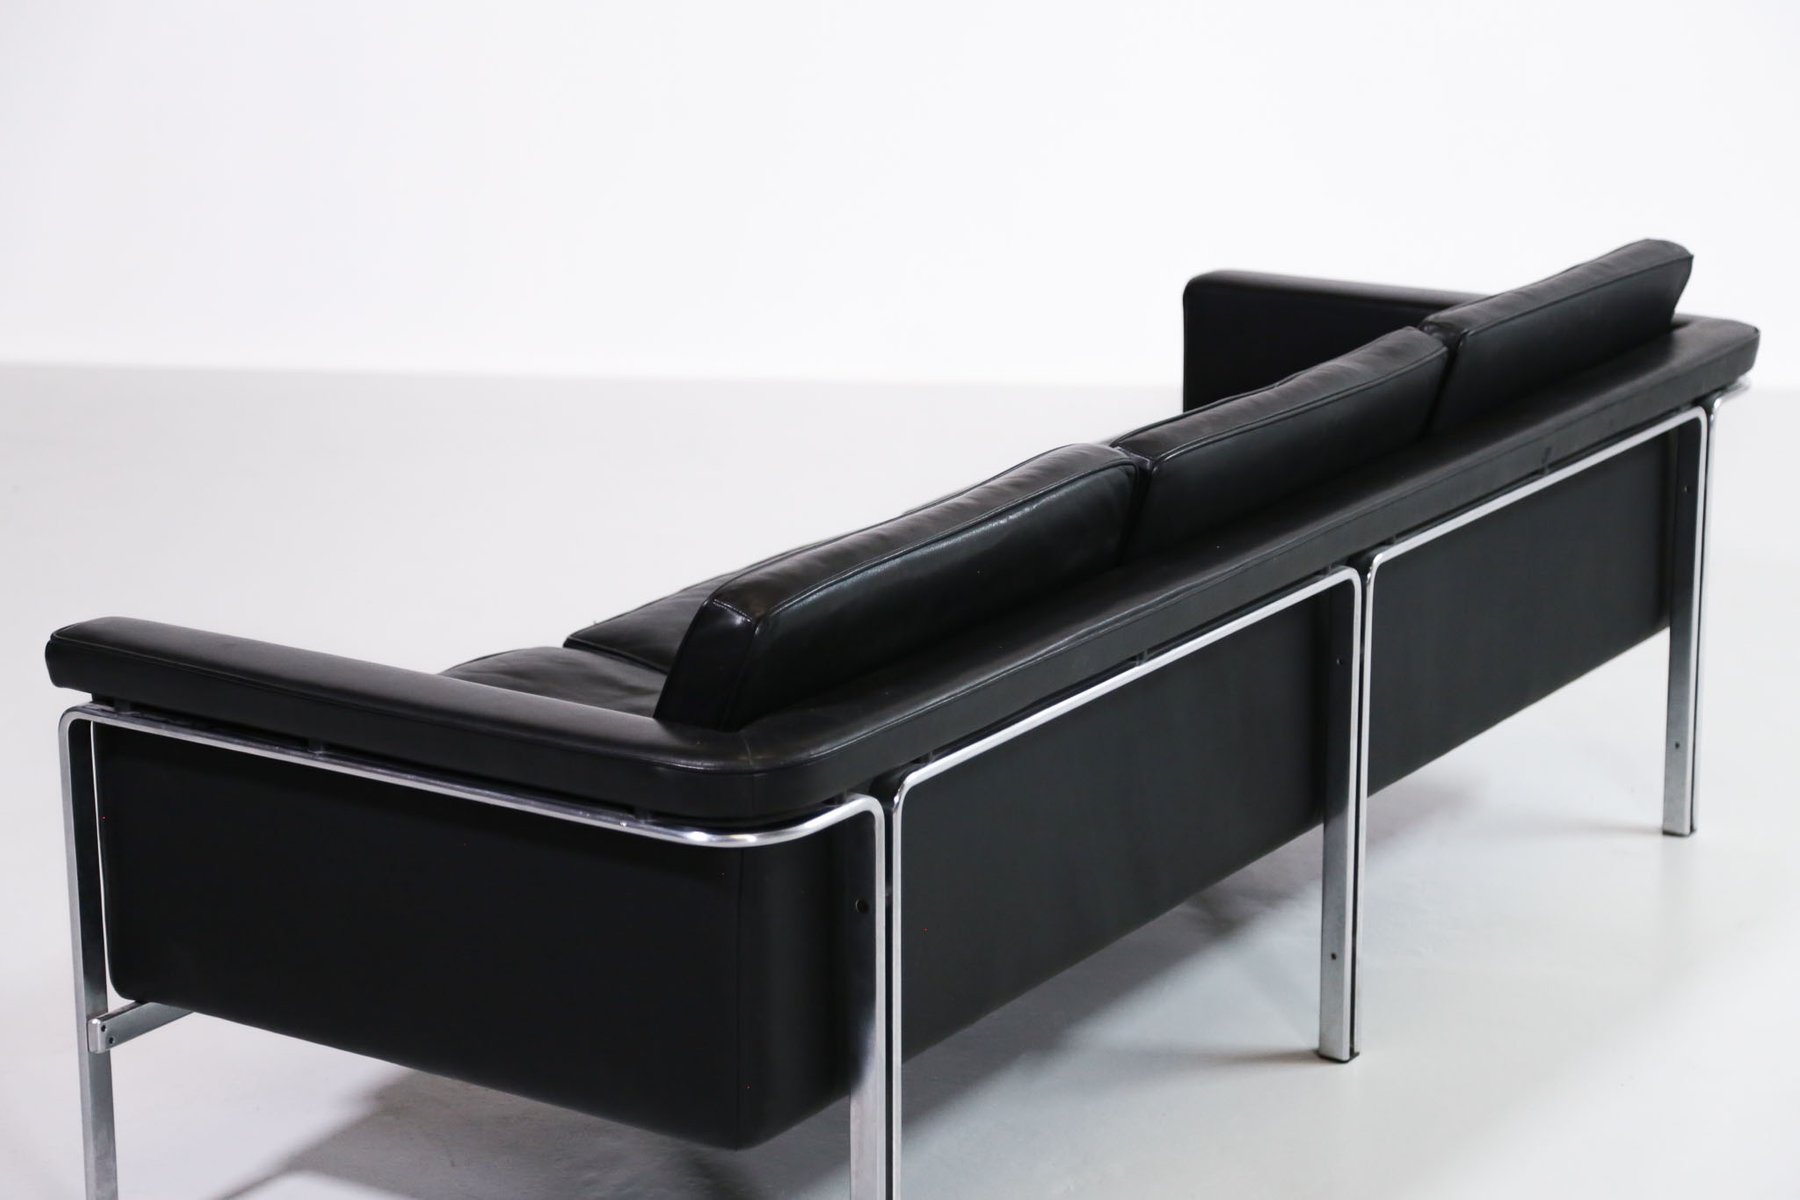 Leather Sofa By Horst Brüning For Kill International, 1960s For Sale At Pamono